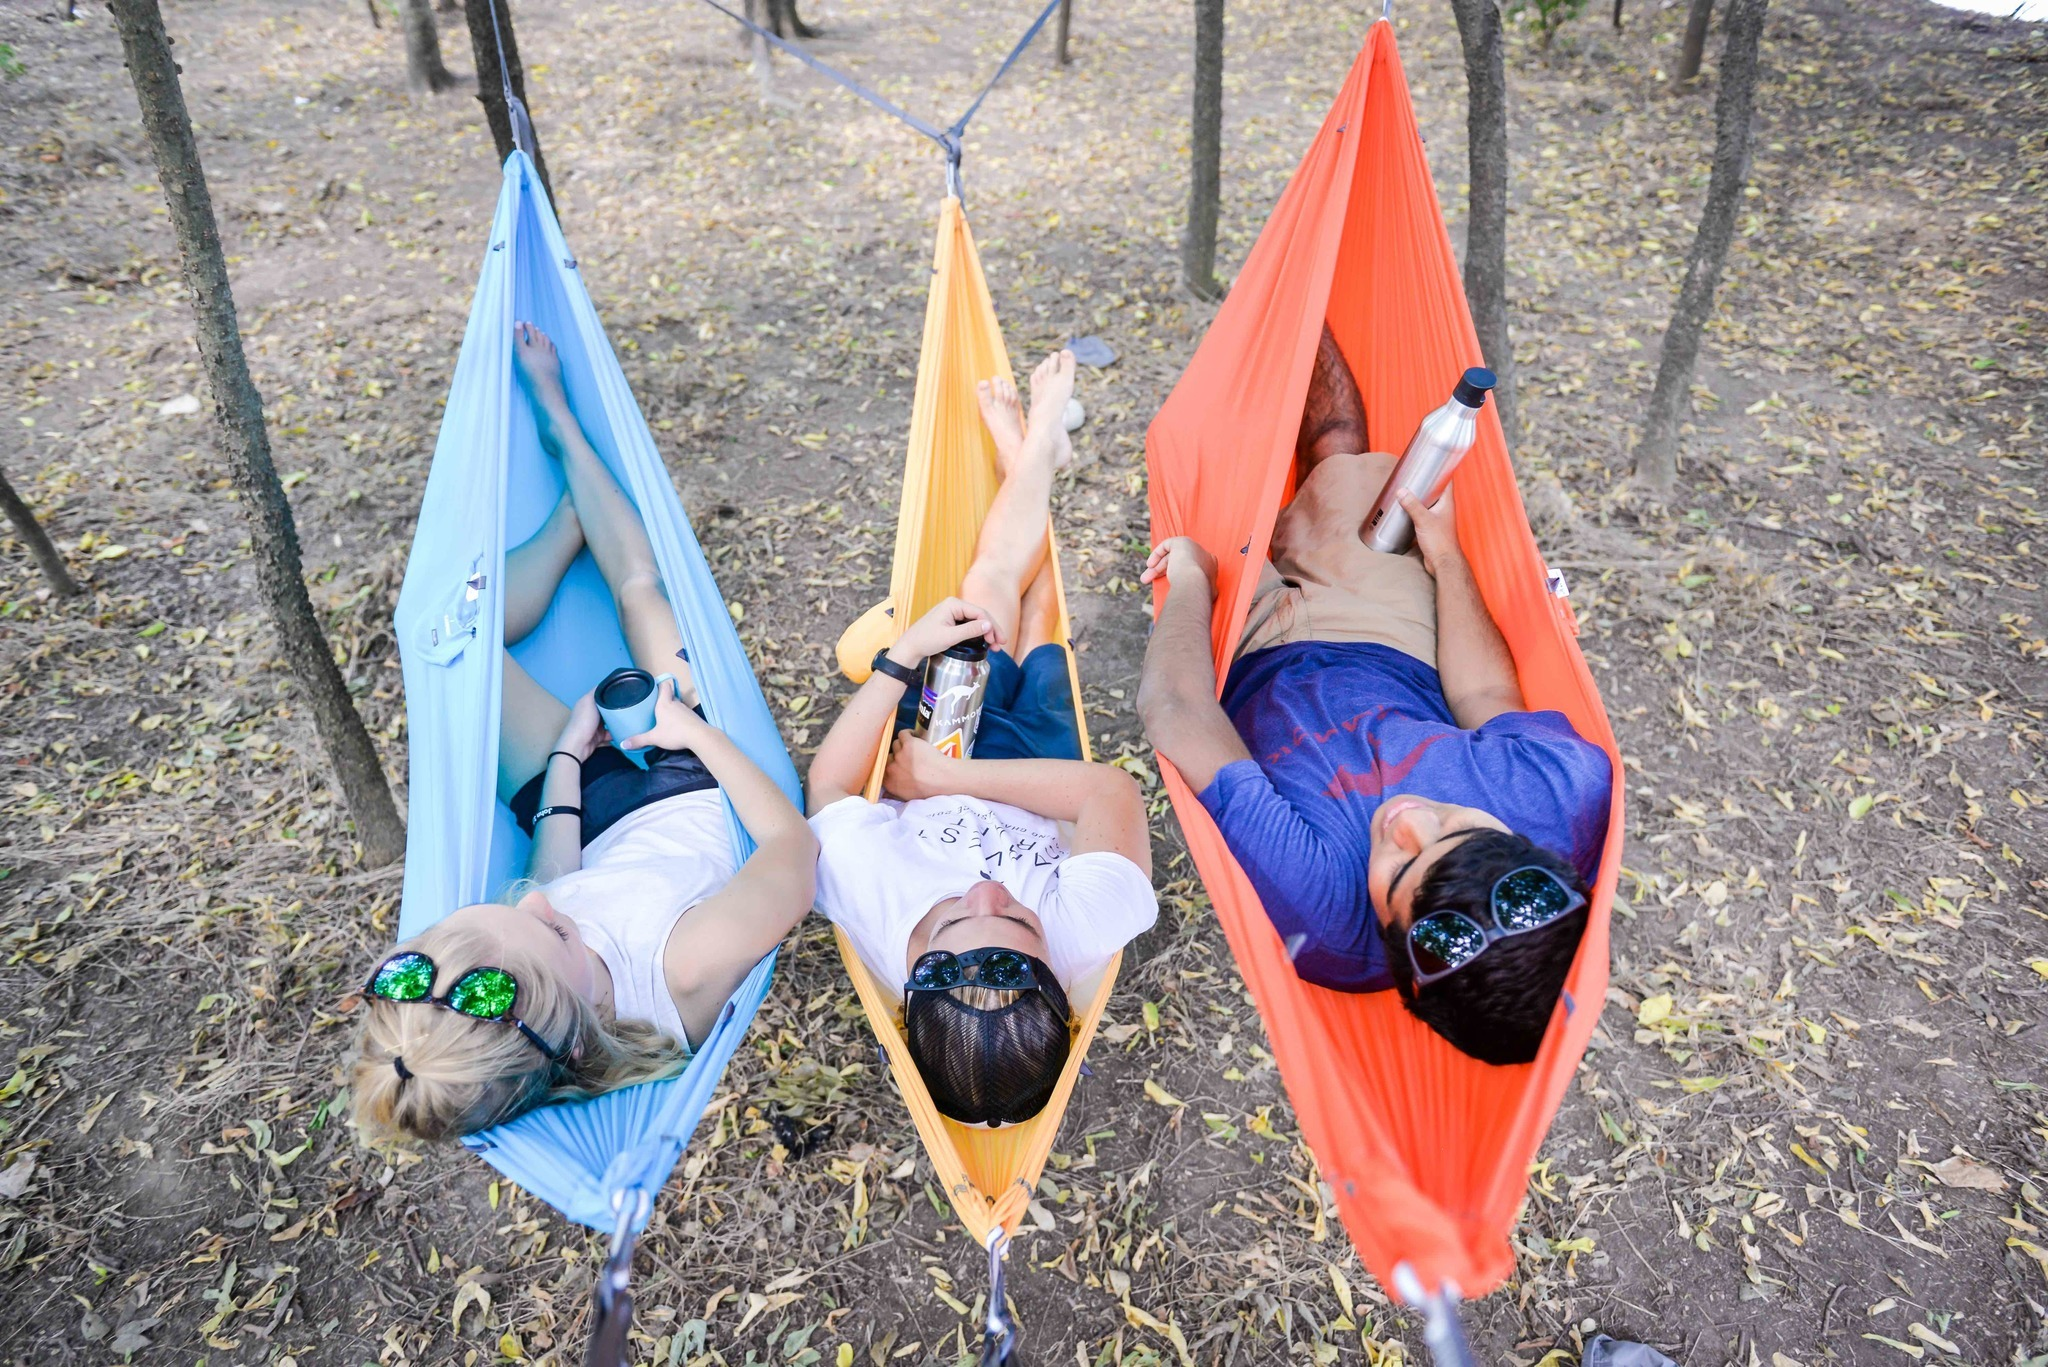 CAMPING HAMMOCK The Kammock Wallaby, which helped kick-start the hot camping-hammock market, weighs